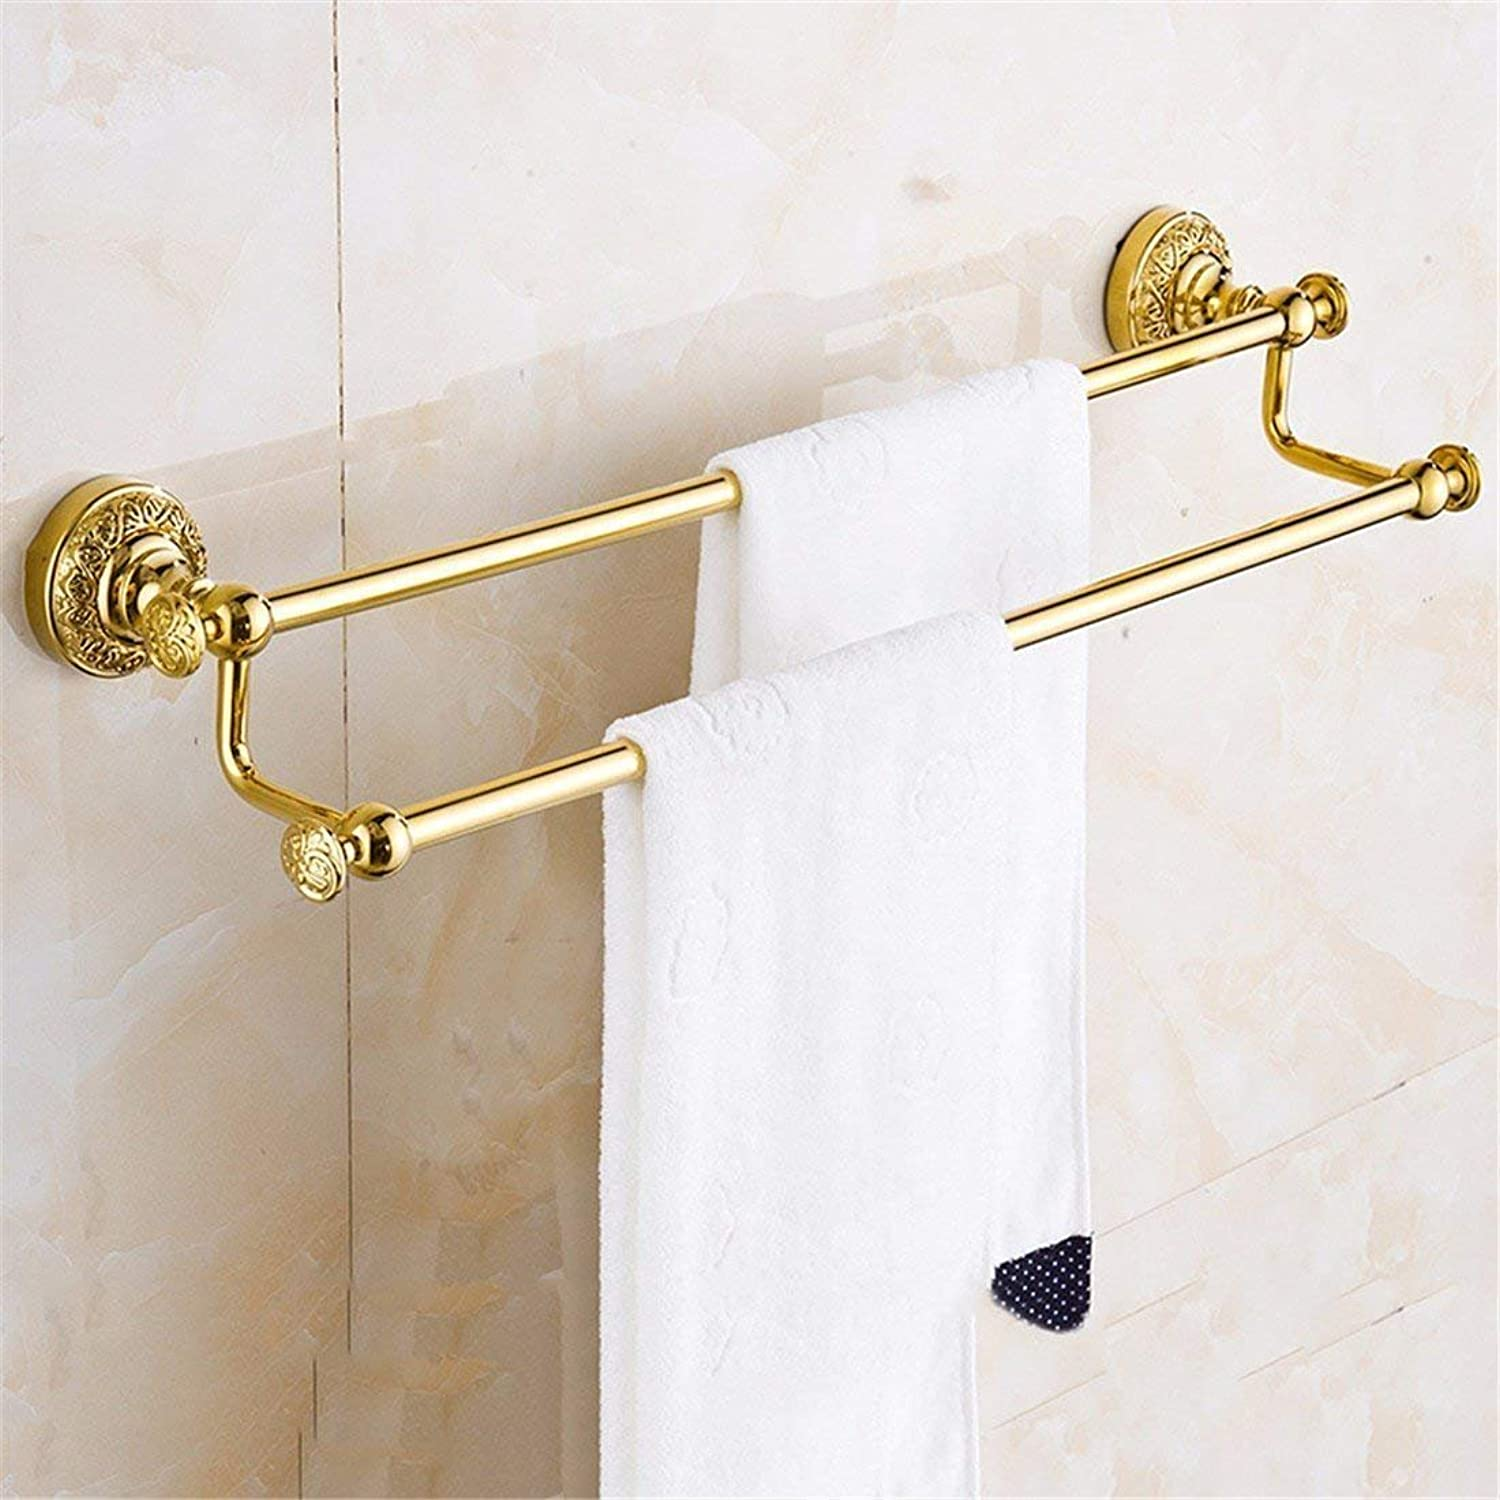 European Copper gold Carved Accessories of Bathroom is Committed to Using a Toilet Brush,Double Rack